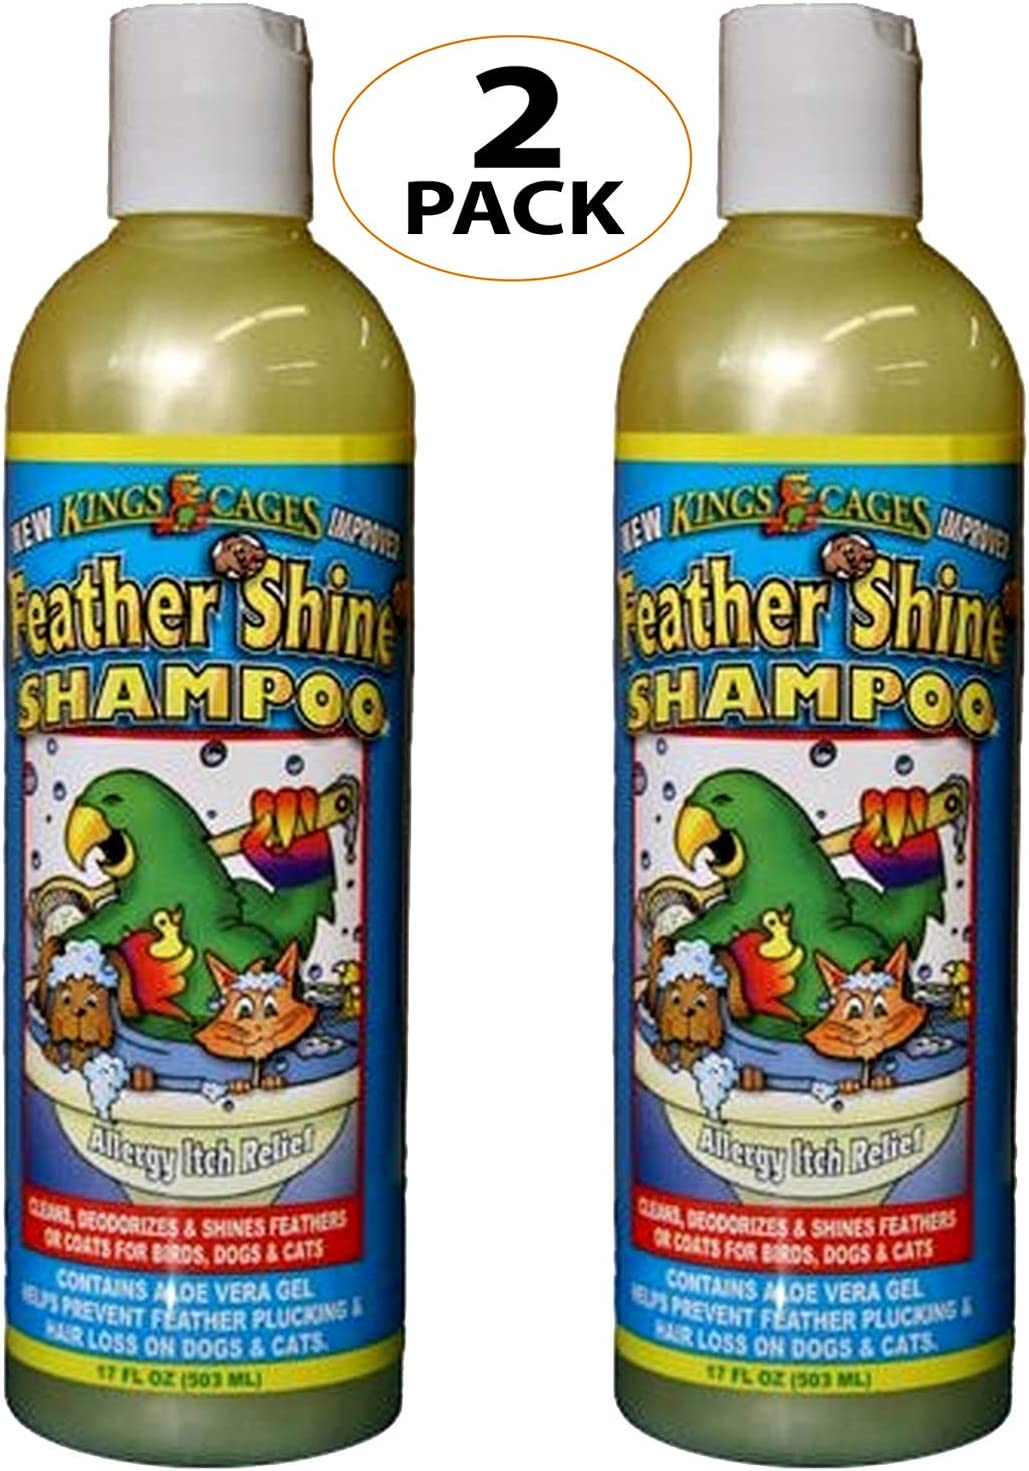 King's Cages Feather Shine 17oz Shampoo